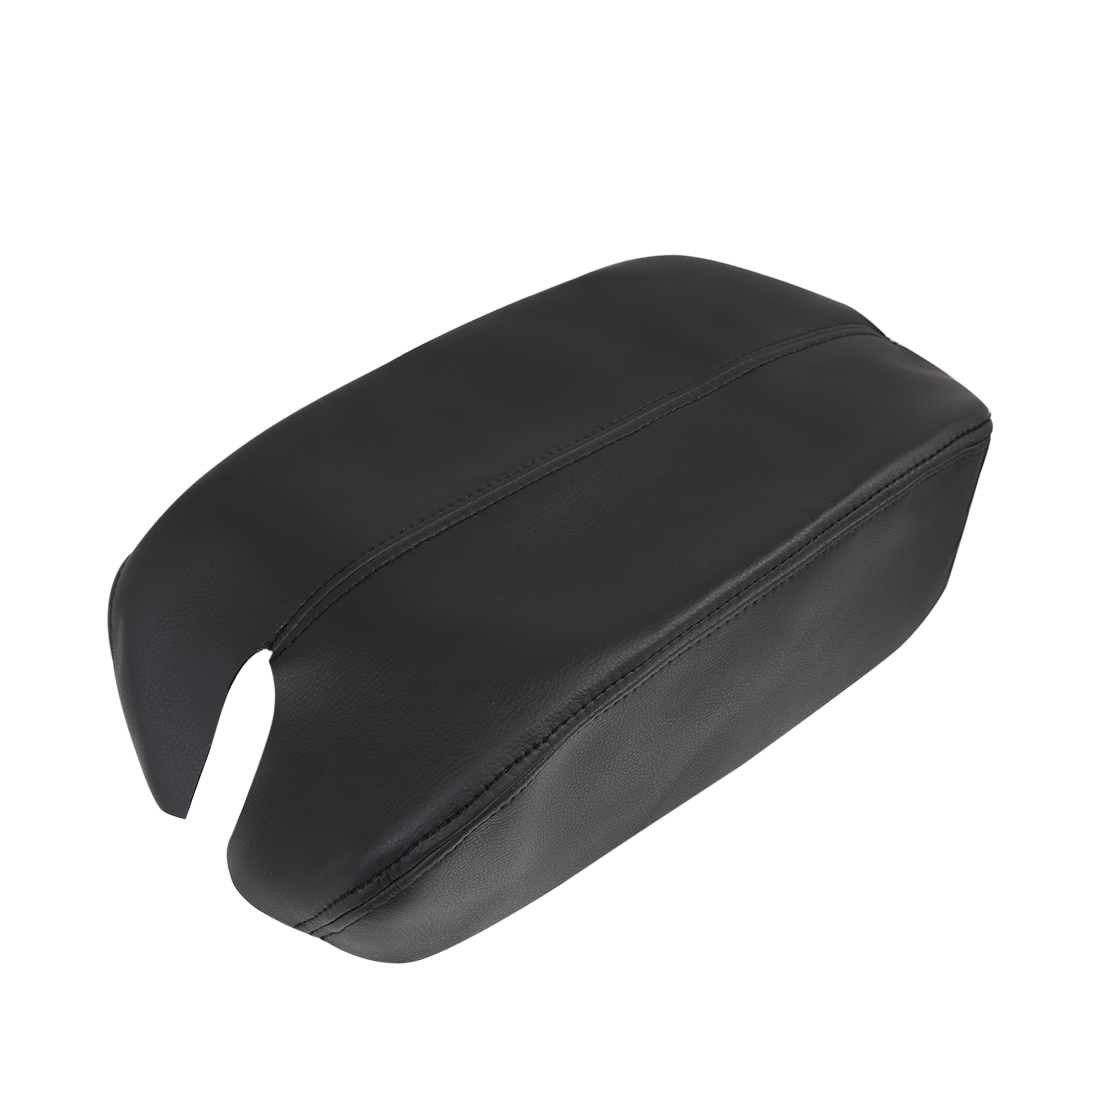 Microfiber Leather Center Console Lid Armrest Cover Black for 08-12 Honda Accord